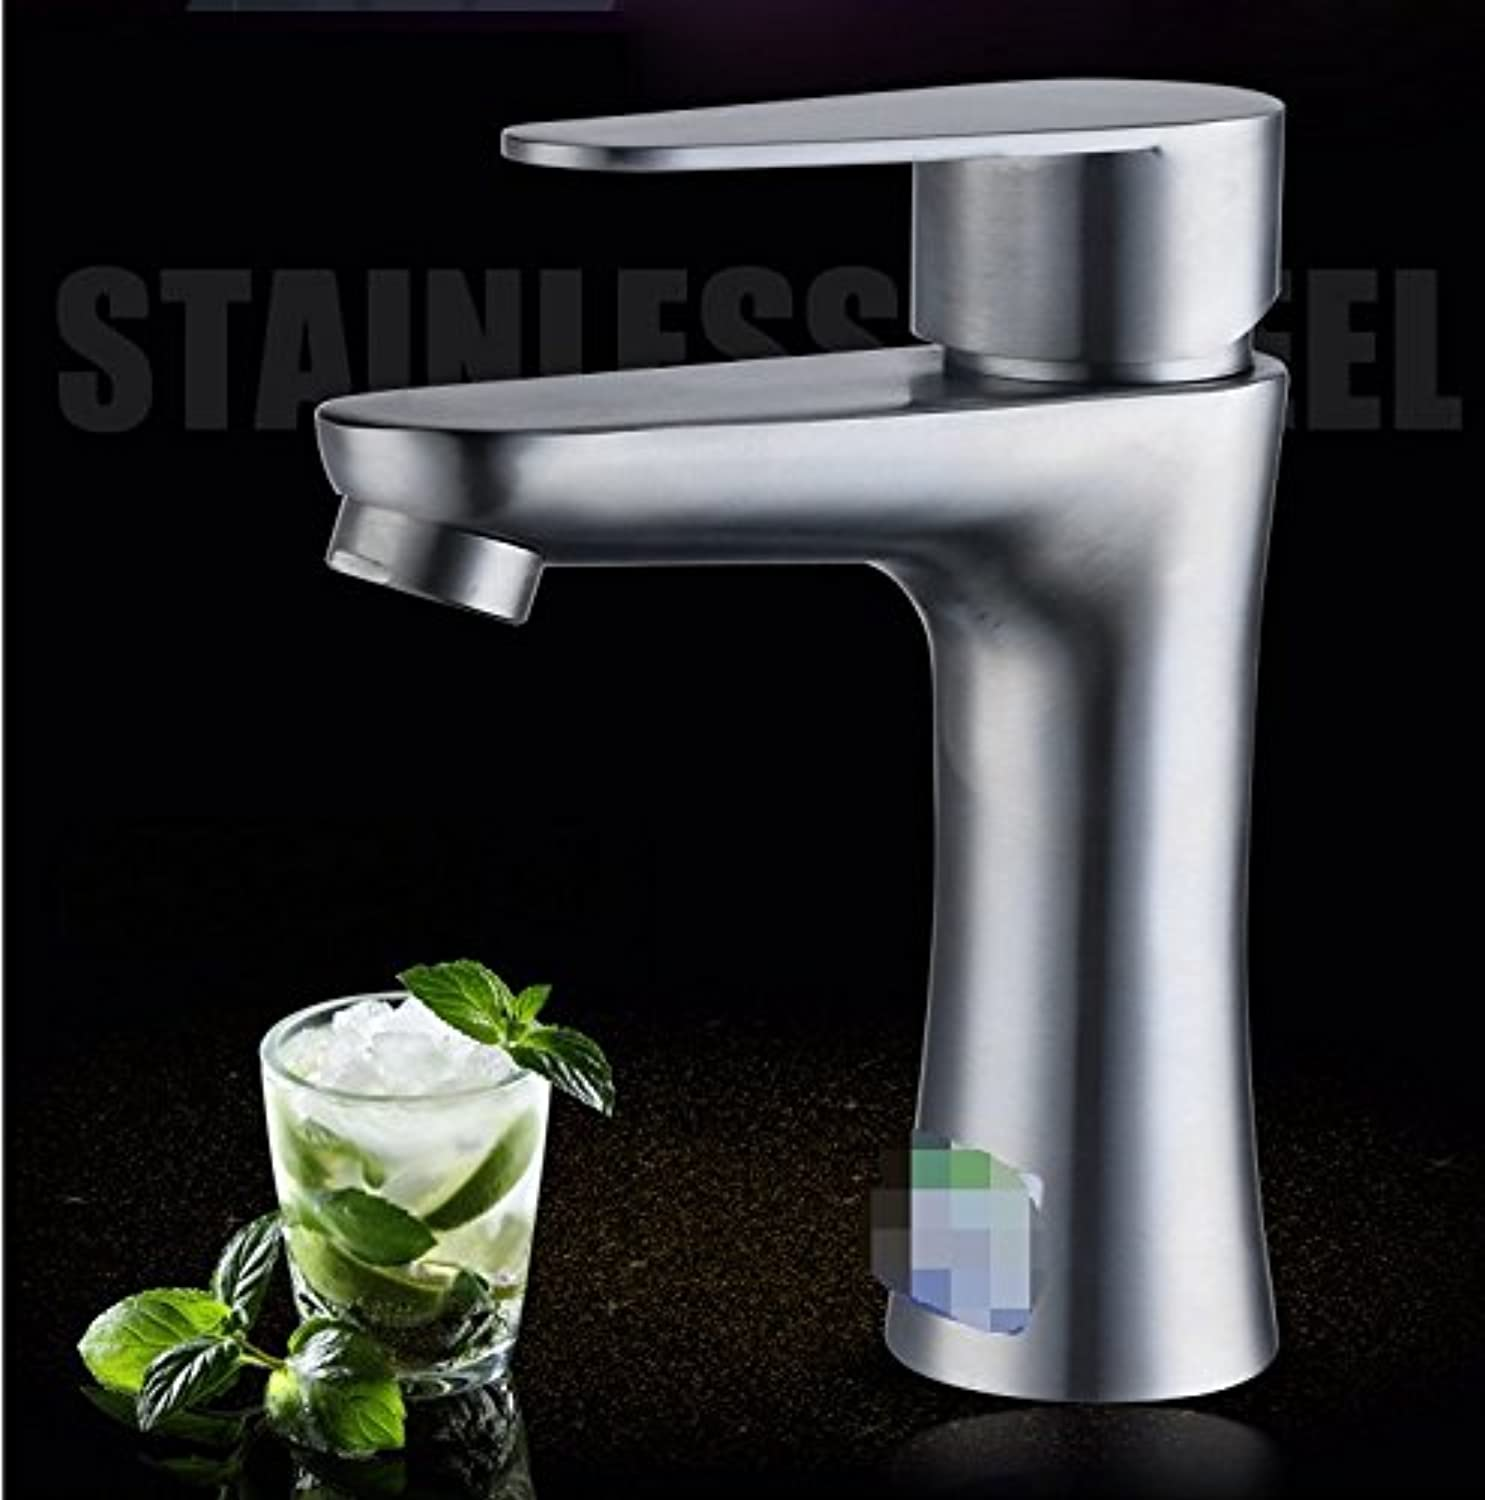 GBHNJ Taps Bathroom Basin Hot And Cold Single Hole Single Handle Sink Mixer